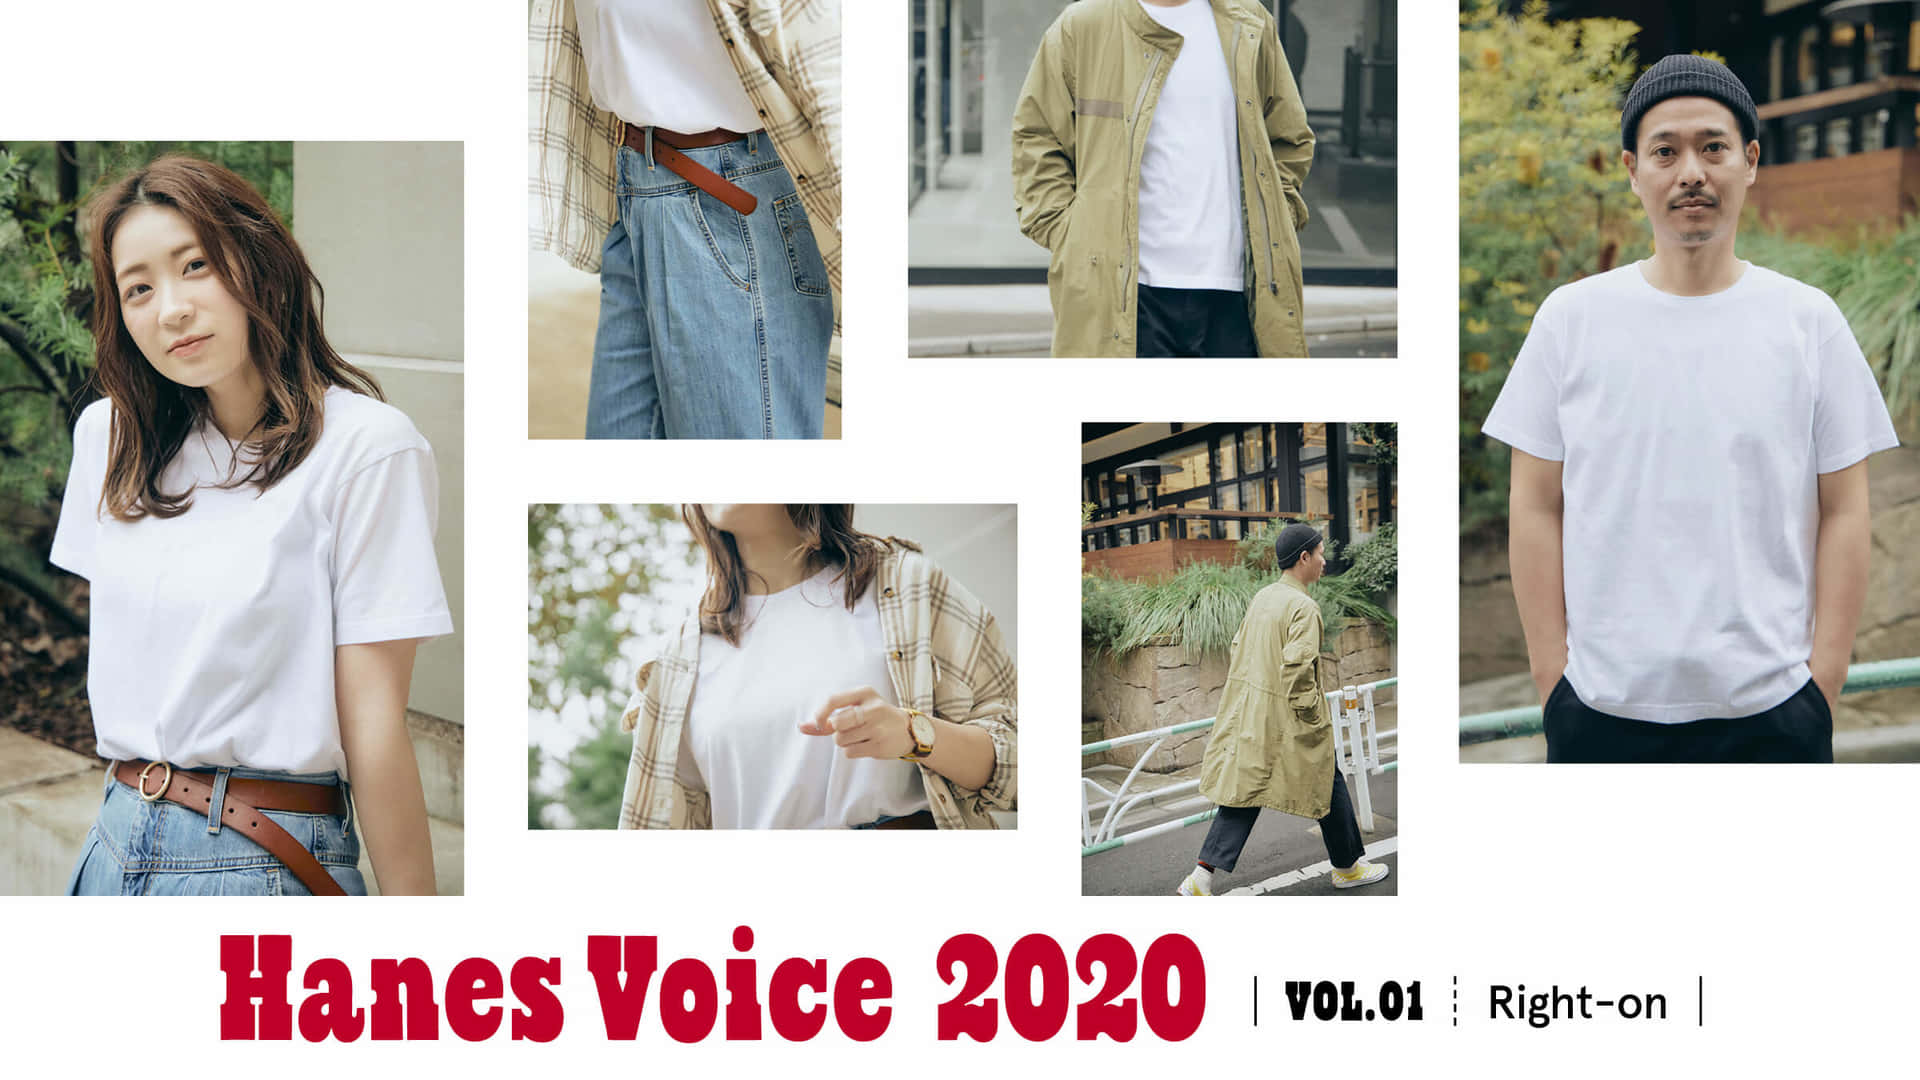 Hanes Voice 2020 vol.1「Right-on」